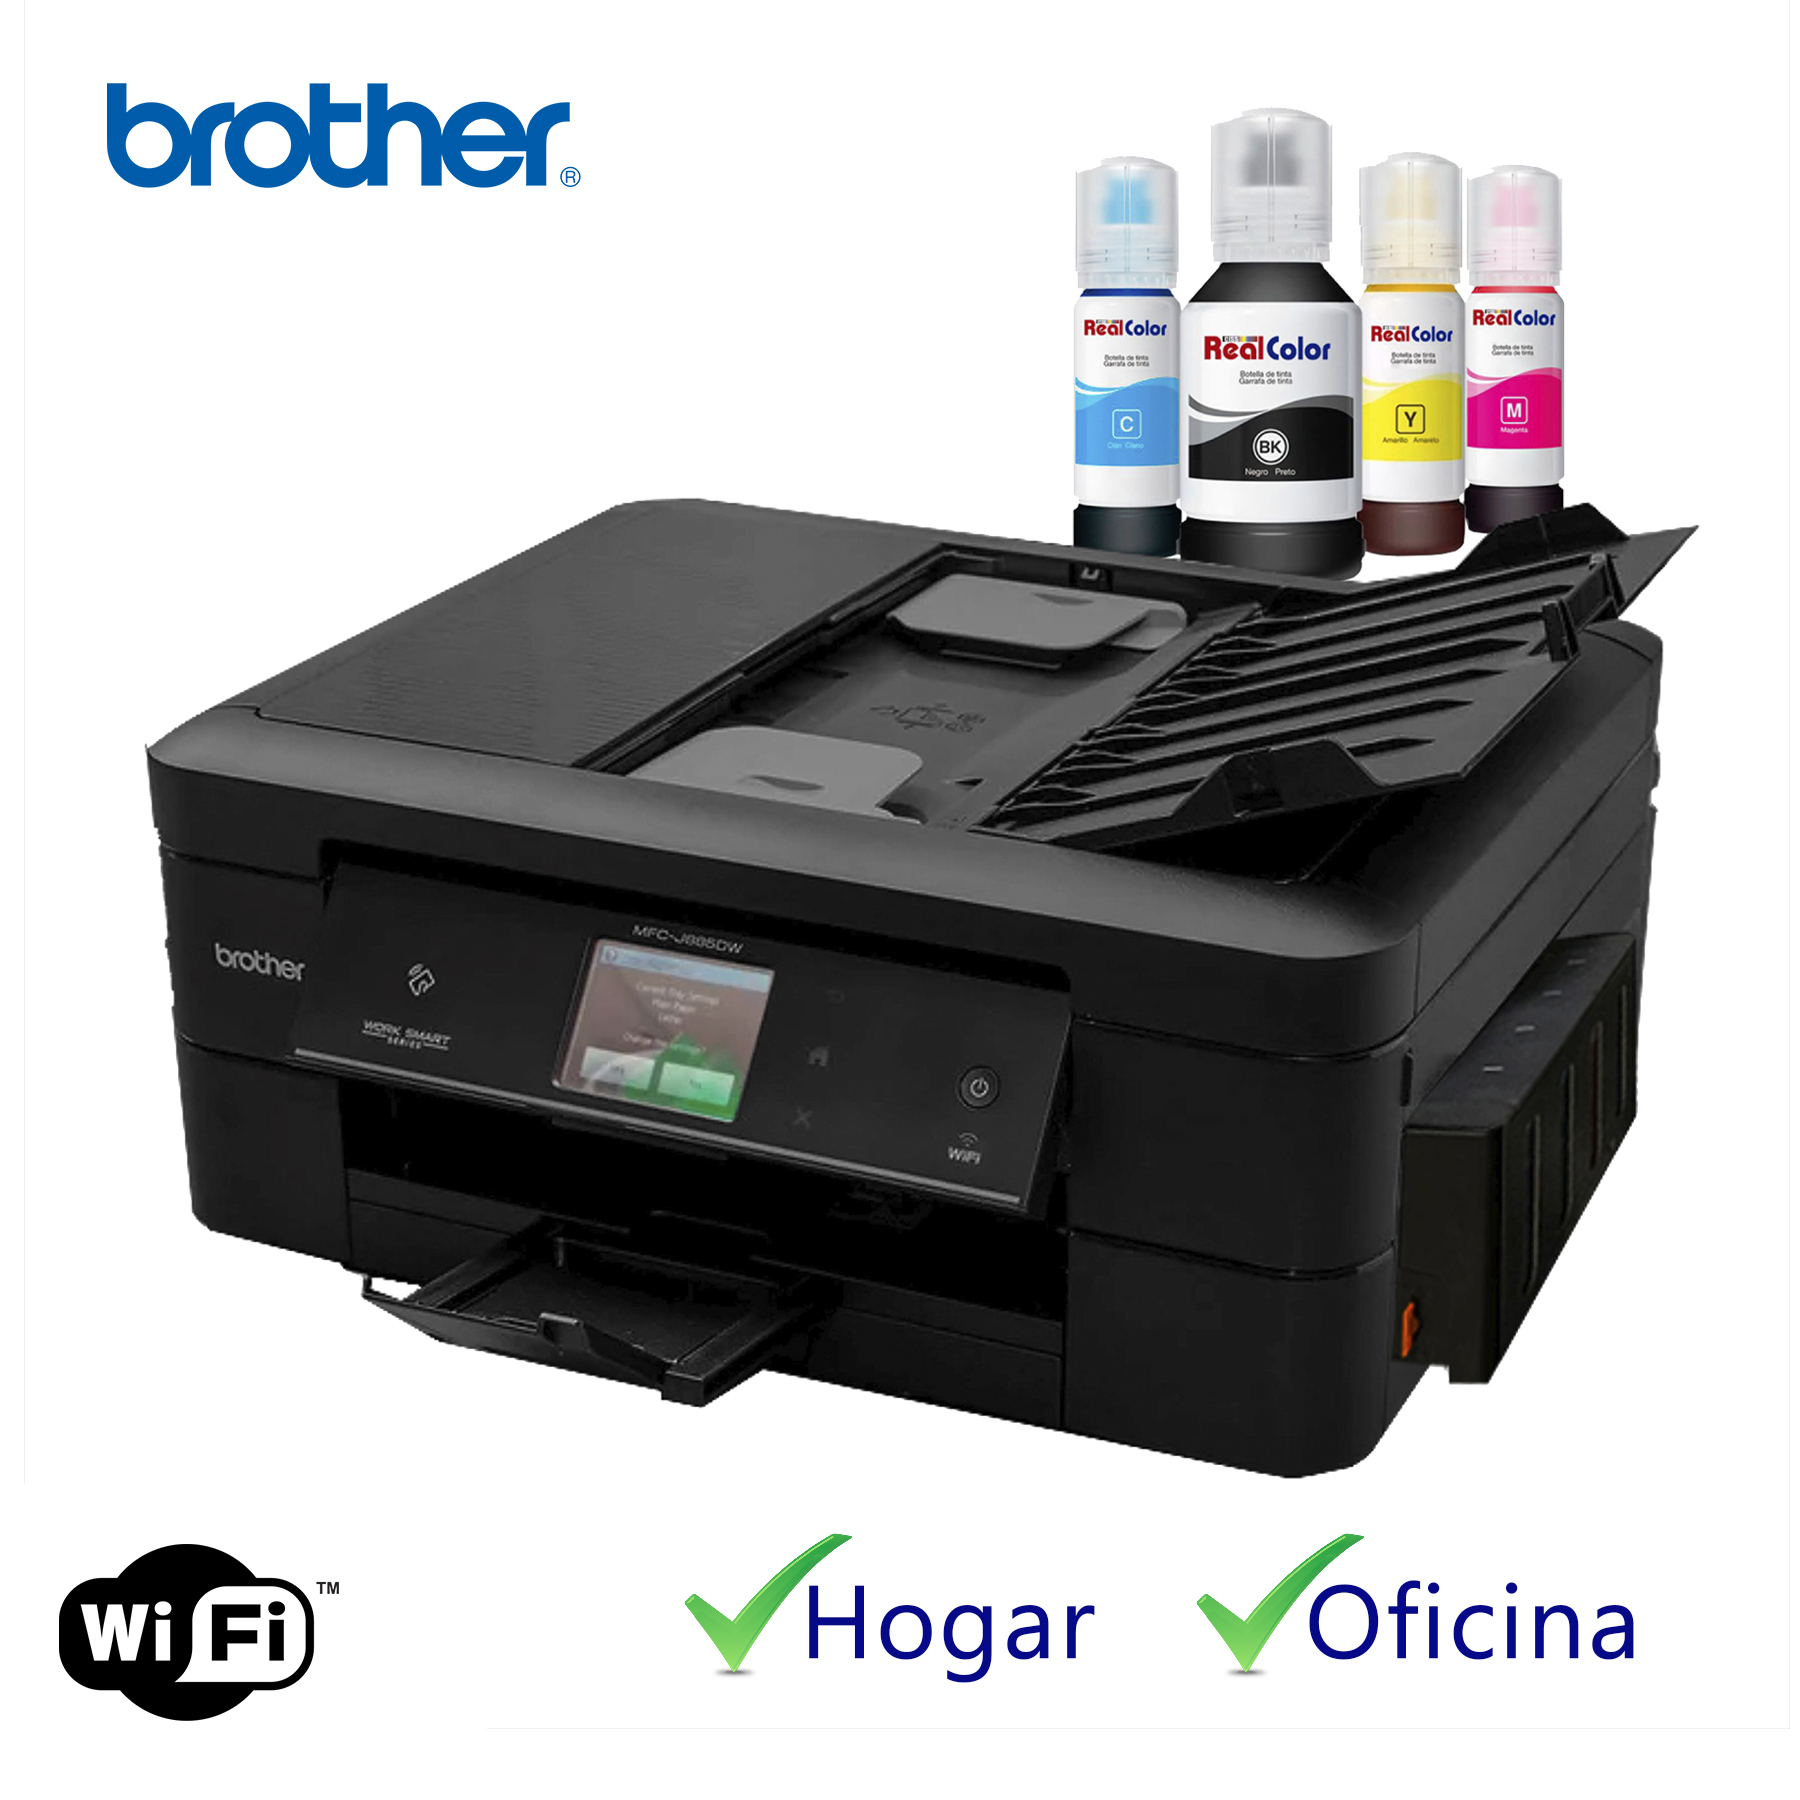 PRINTER EPSON WF-2540 + SISTEMA TINTA REAL COLOR